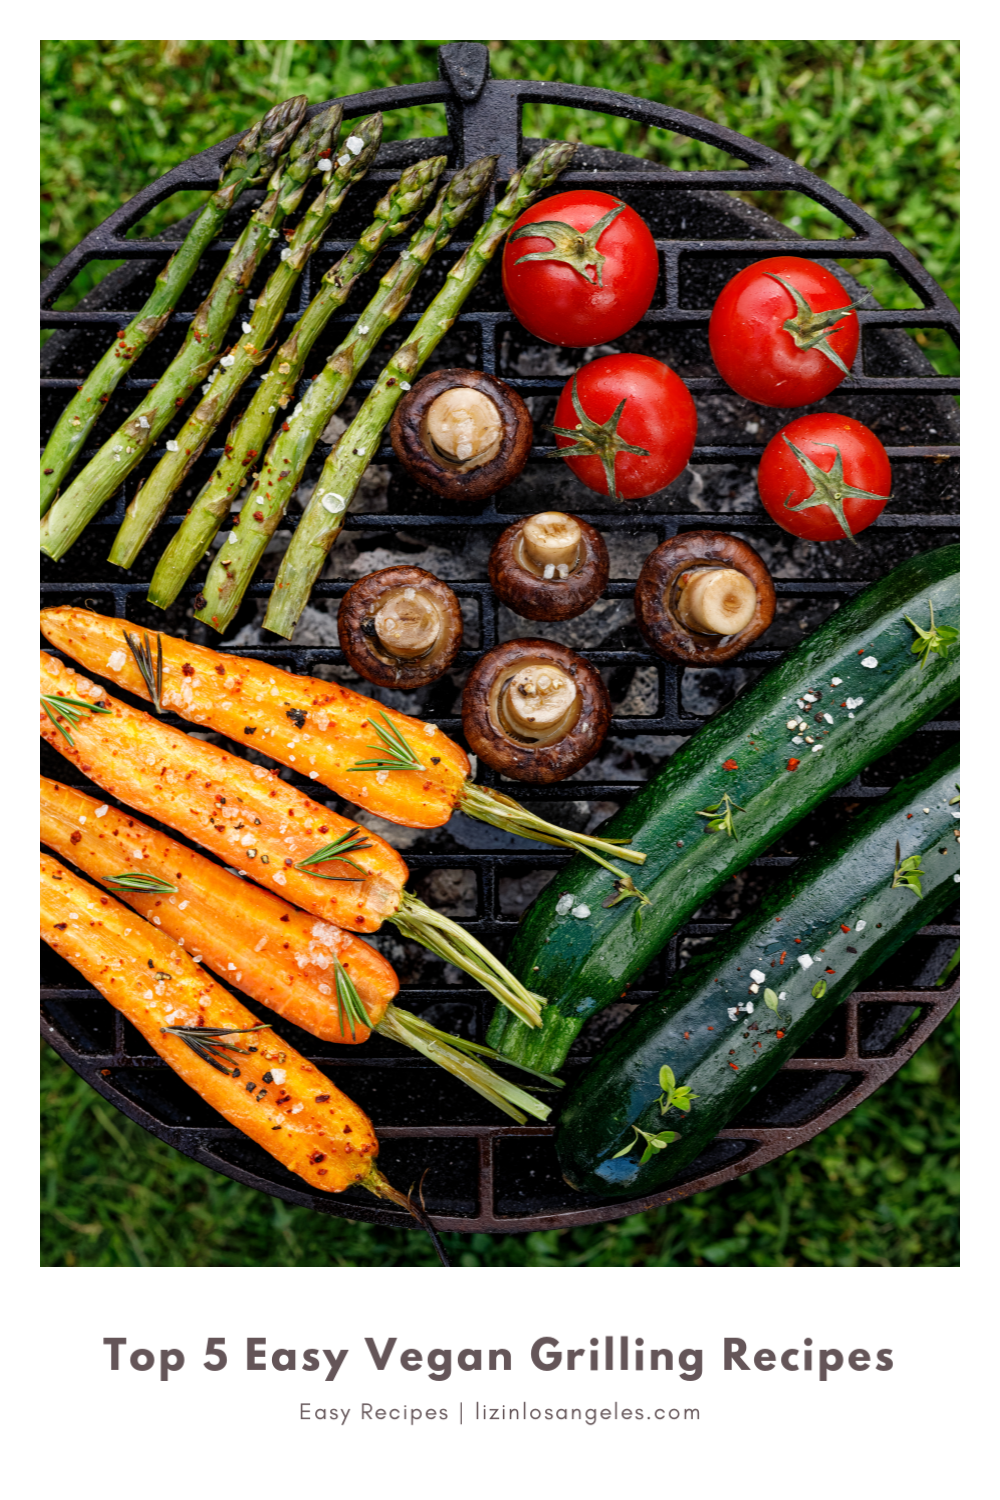 Top 5 Easy Vegan Grilling Recipes to Try This Summer, a blog post by Liz in Los Angeles, Los Angeles Lifestyle Blogger, an image veggies